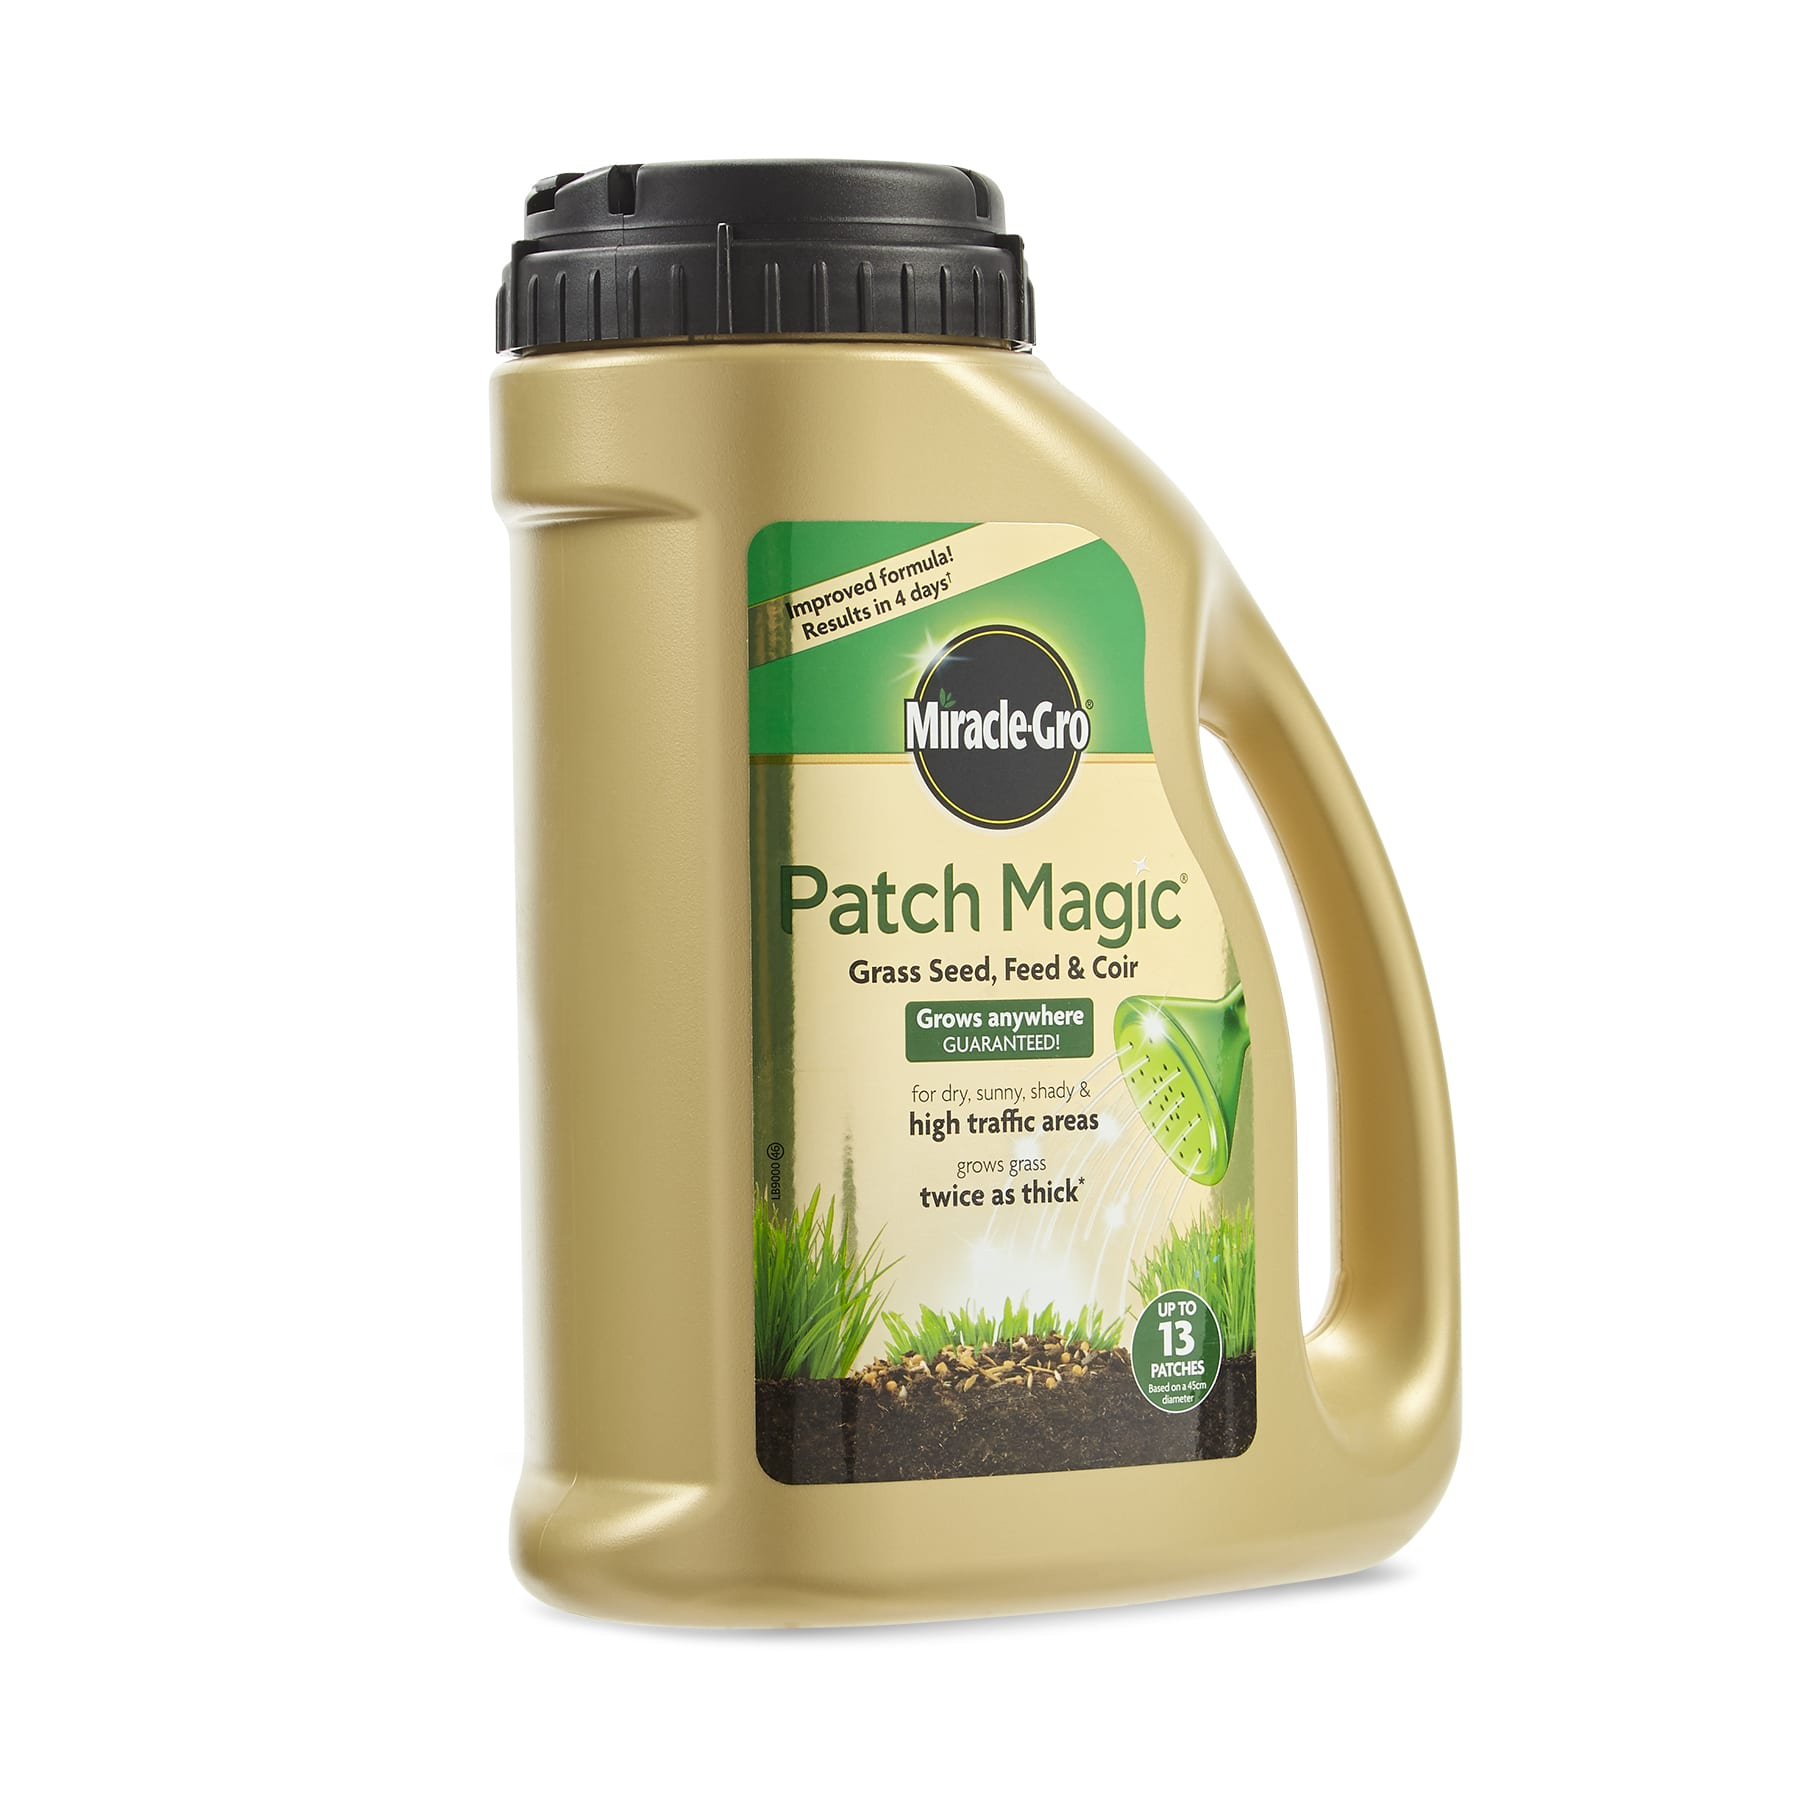 Patch Magic Grass seed, Feed and Coir Bottle